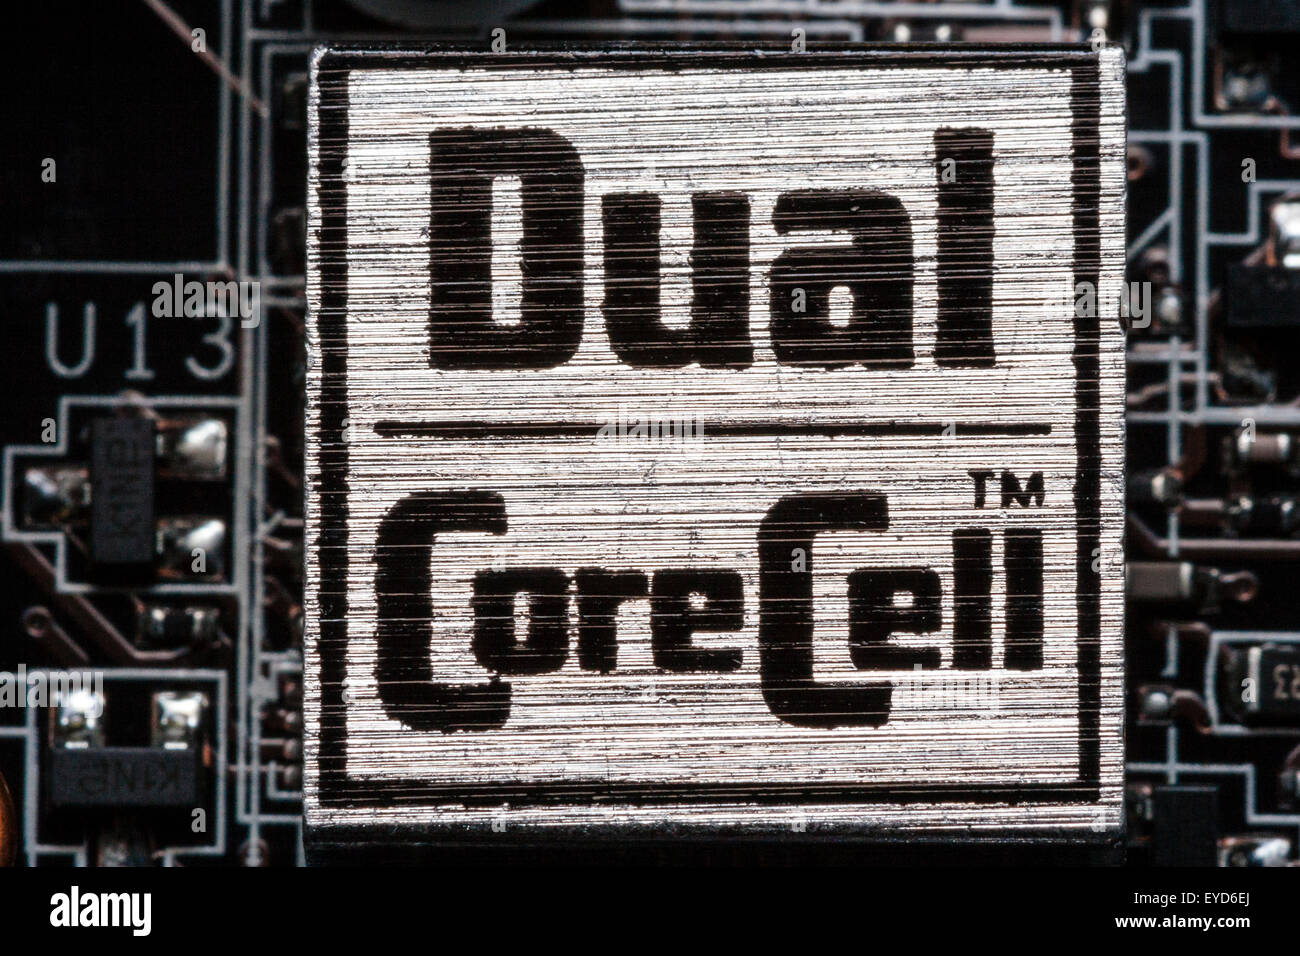 MSI Intel computer motherboard, 'Dual core cell' logo on board - Stock Image